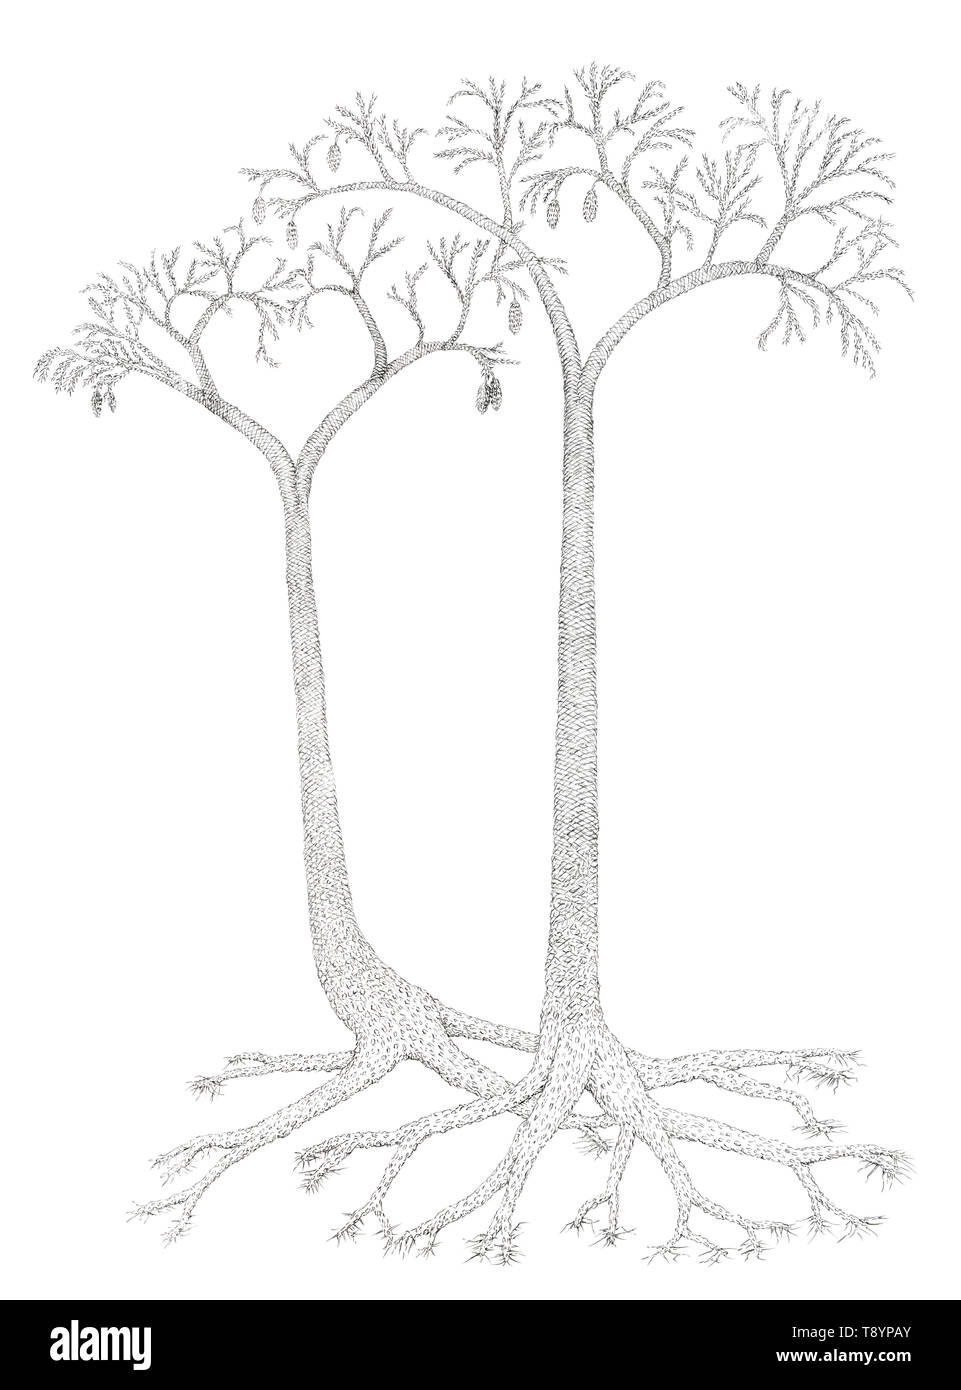 Drawing of a extinct tree-like plants Lepidodendron. Graphite pencil on paper. - Stock Image